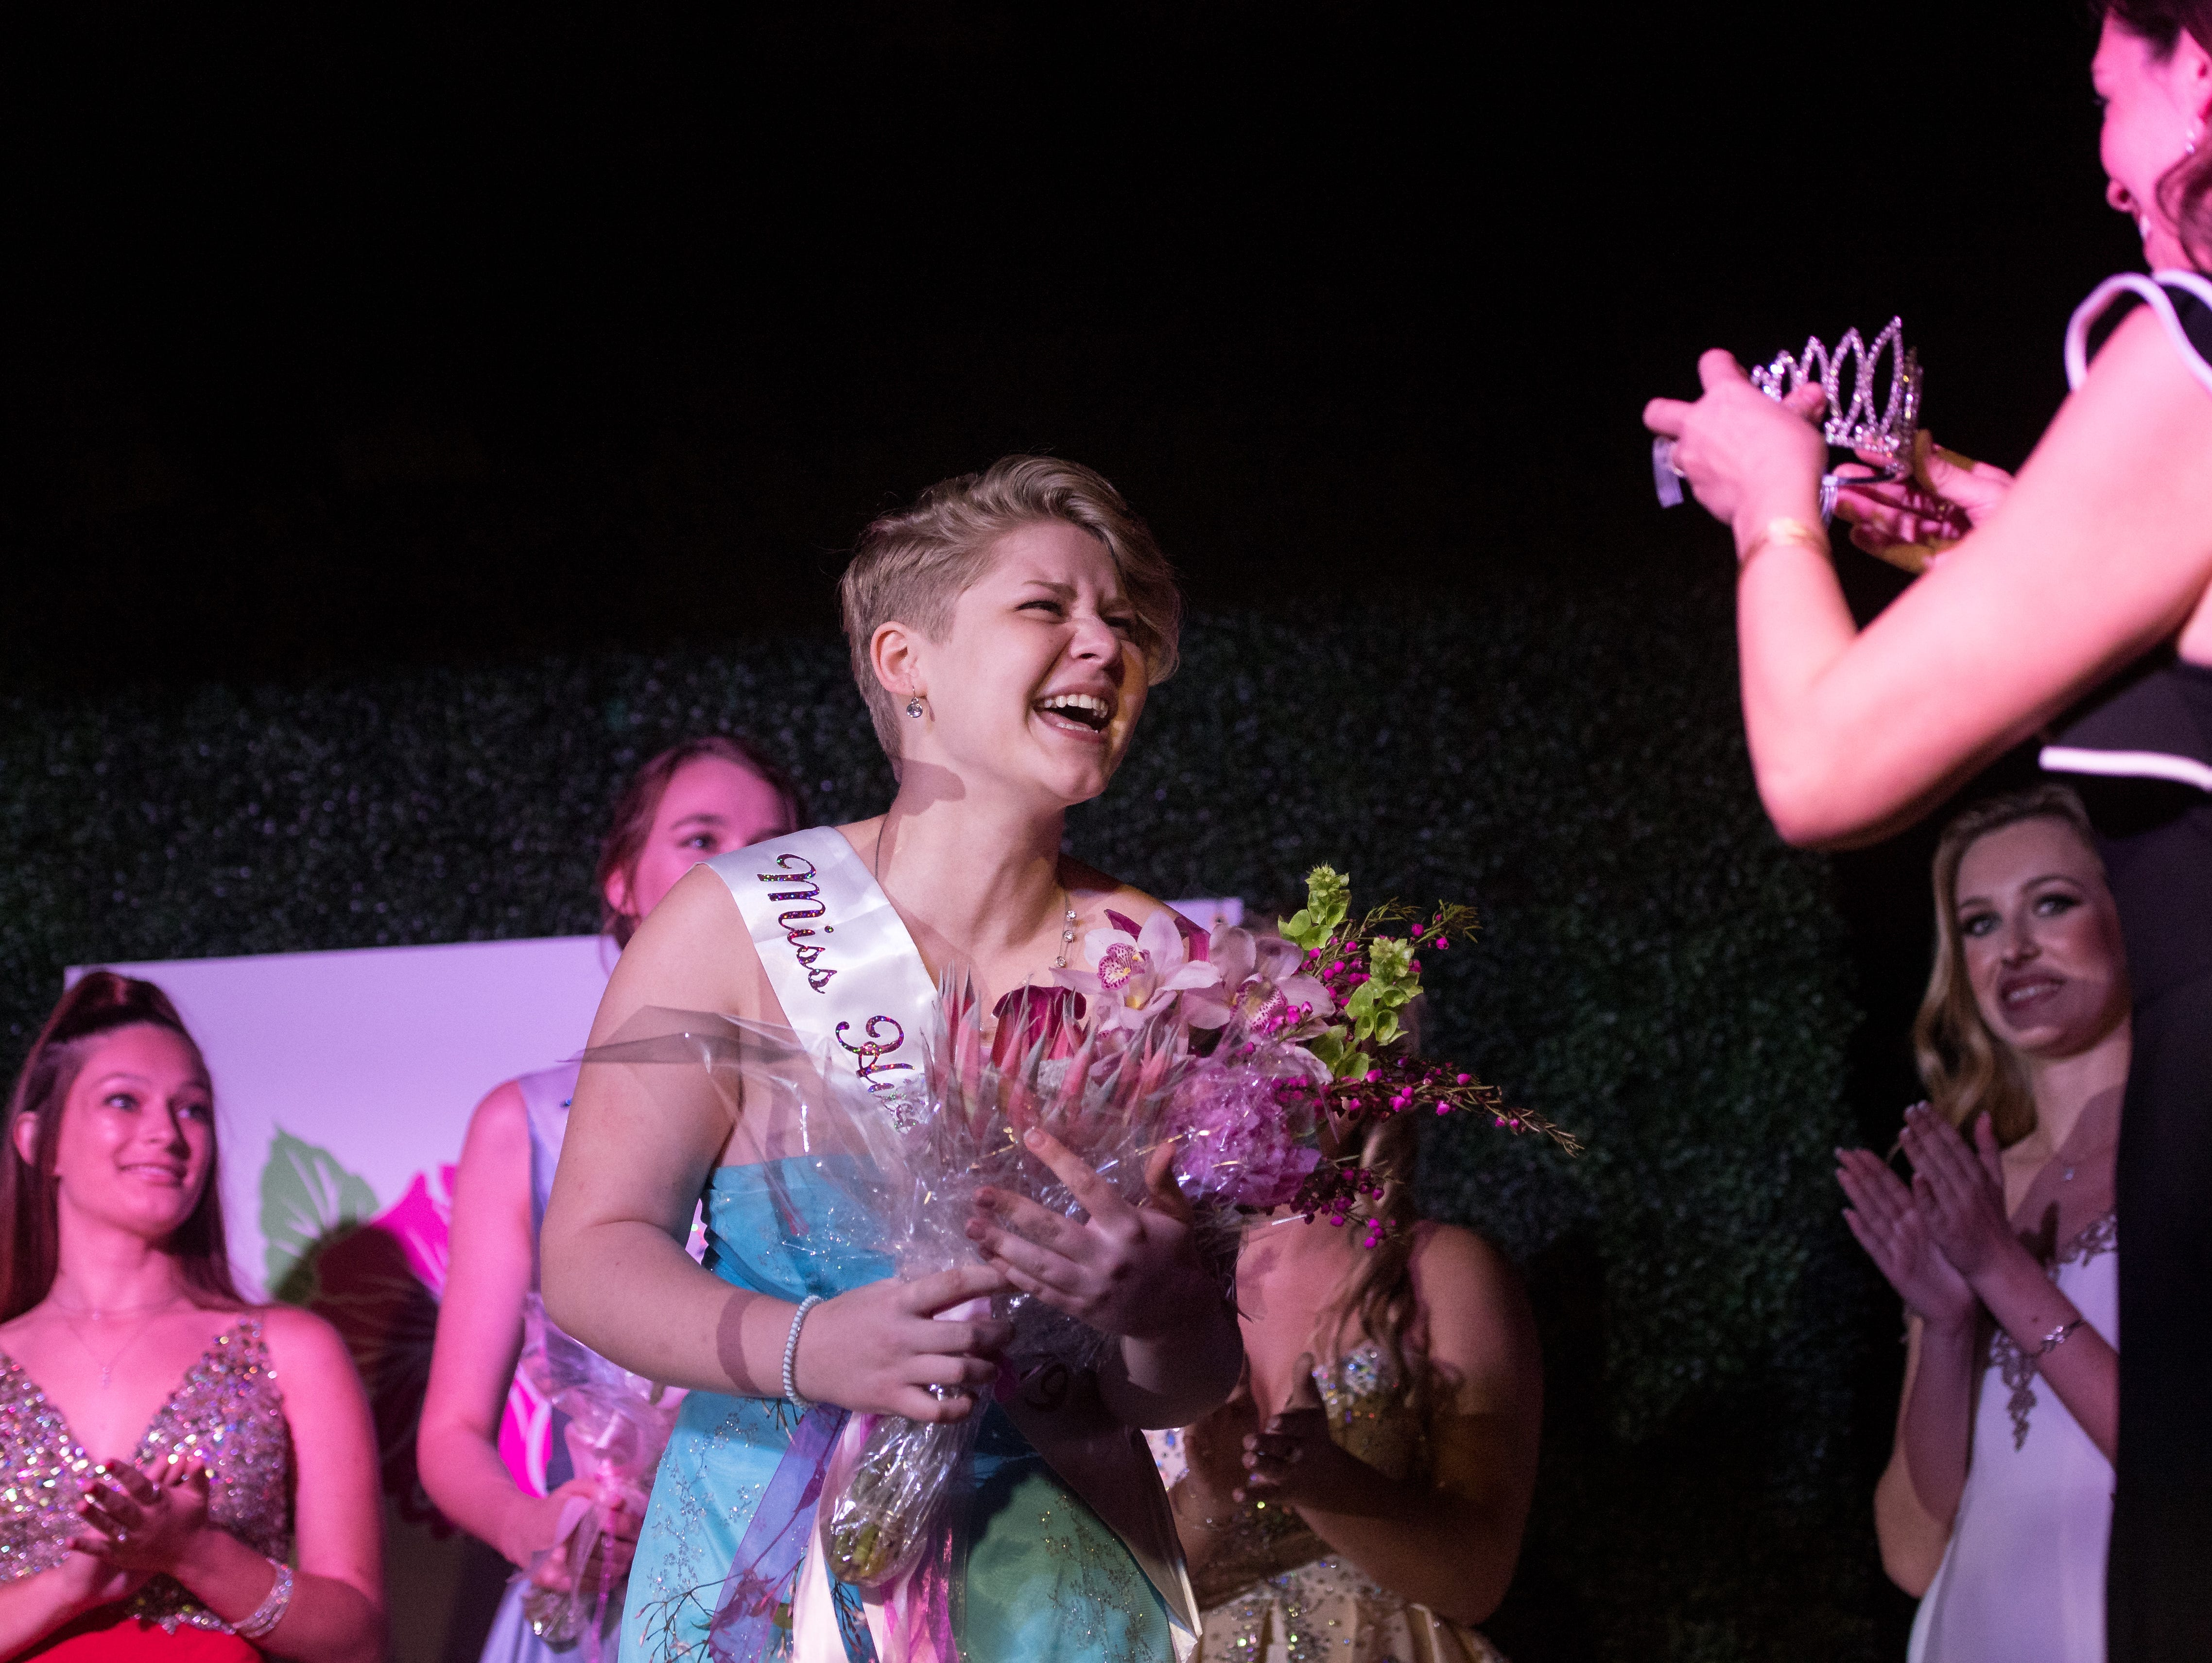 The 2019 Miss Hibiscus Pageant winner Rebekah Parsons (center) is adorned with a tiara after being announced as Miss Hibiscus 2019 on Thursday, April 11, 2019, at the Heritage Center in Vero Beach.